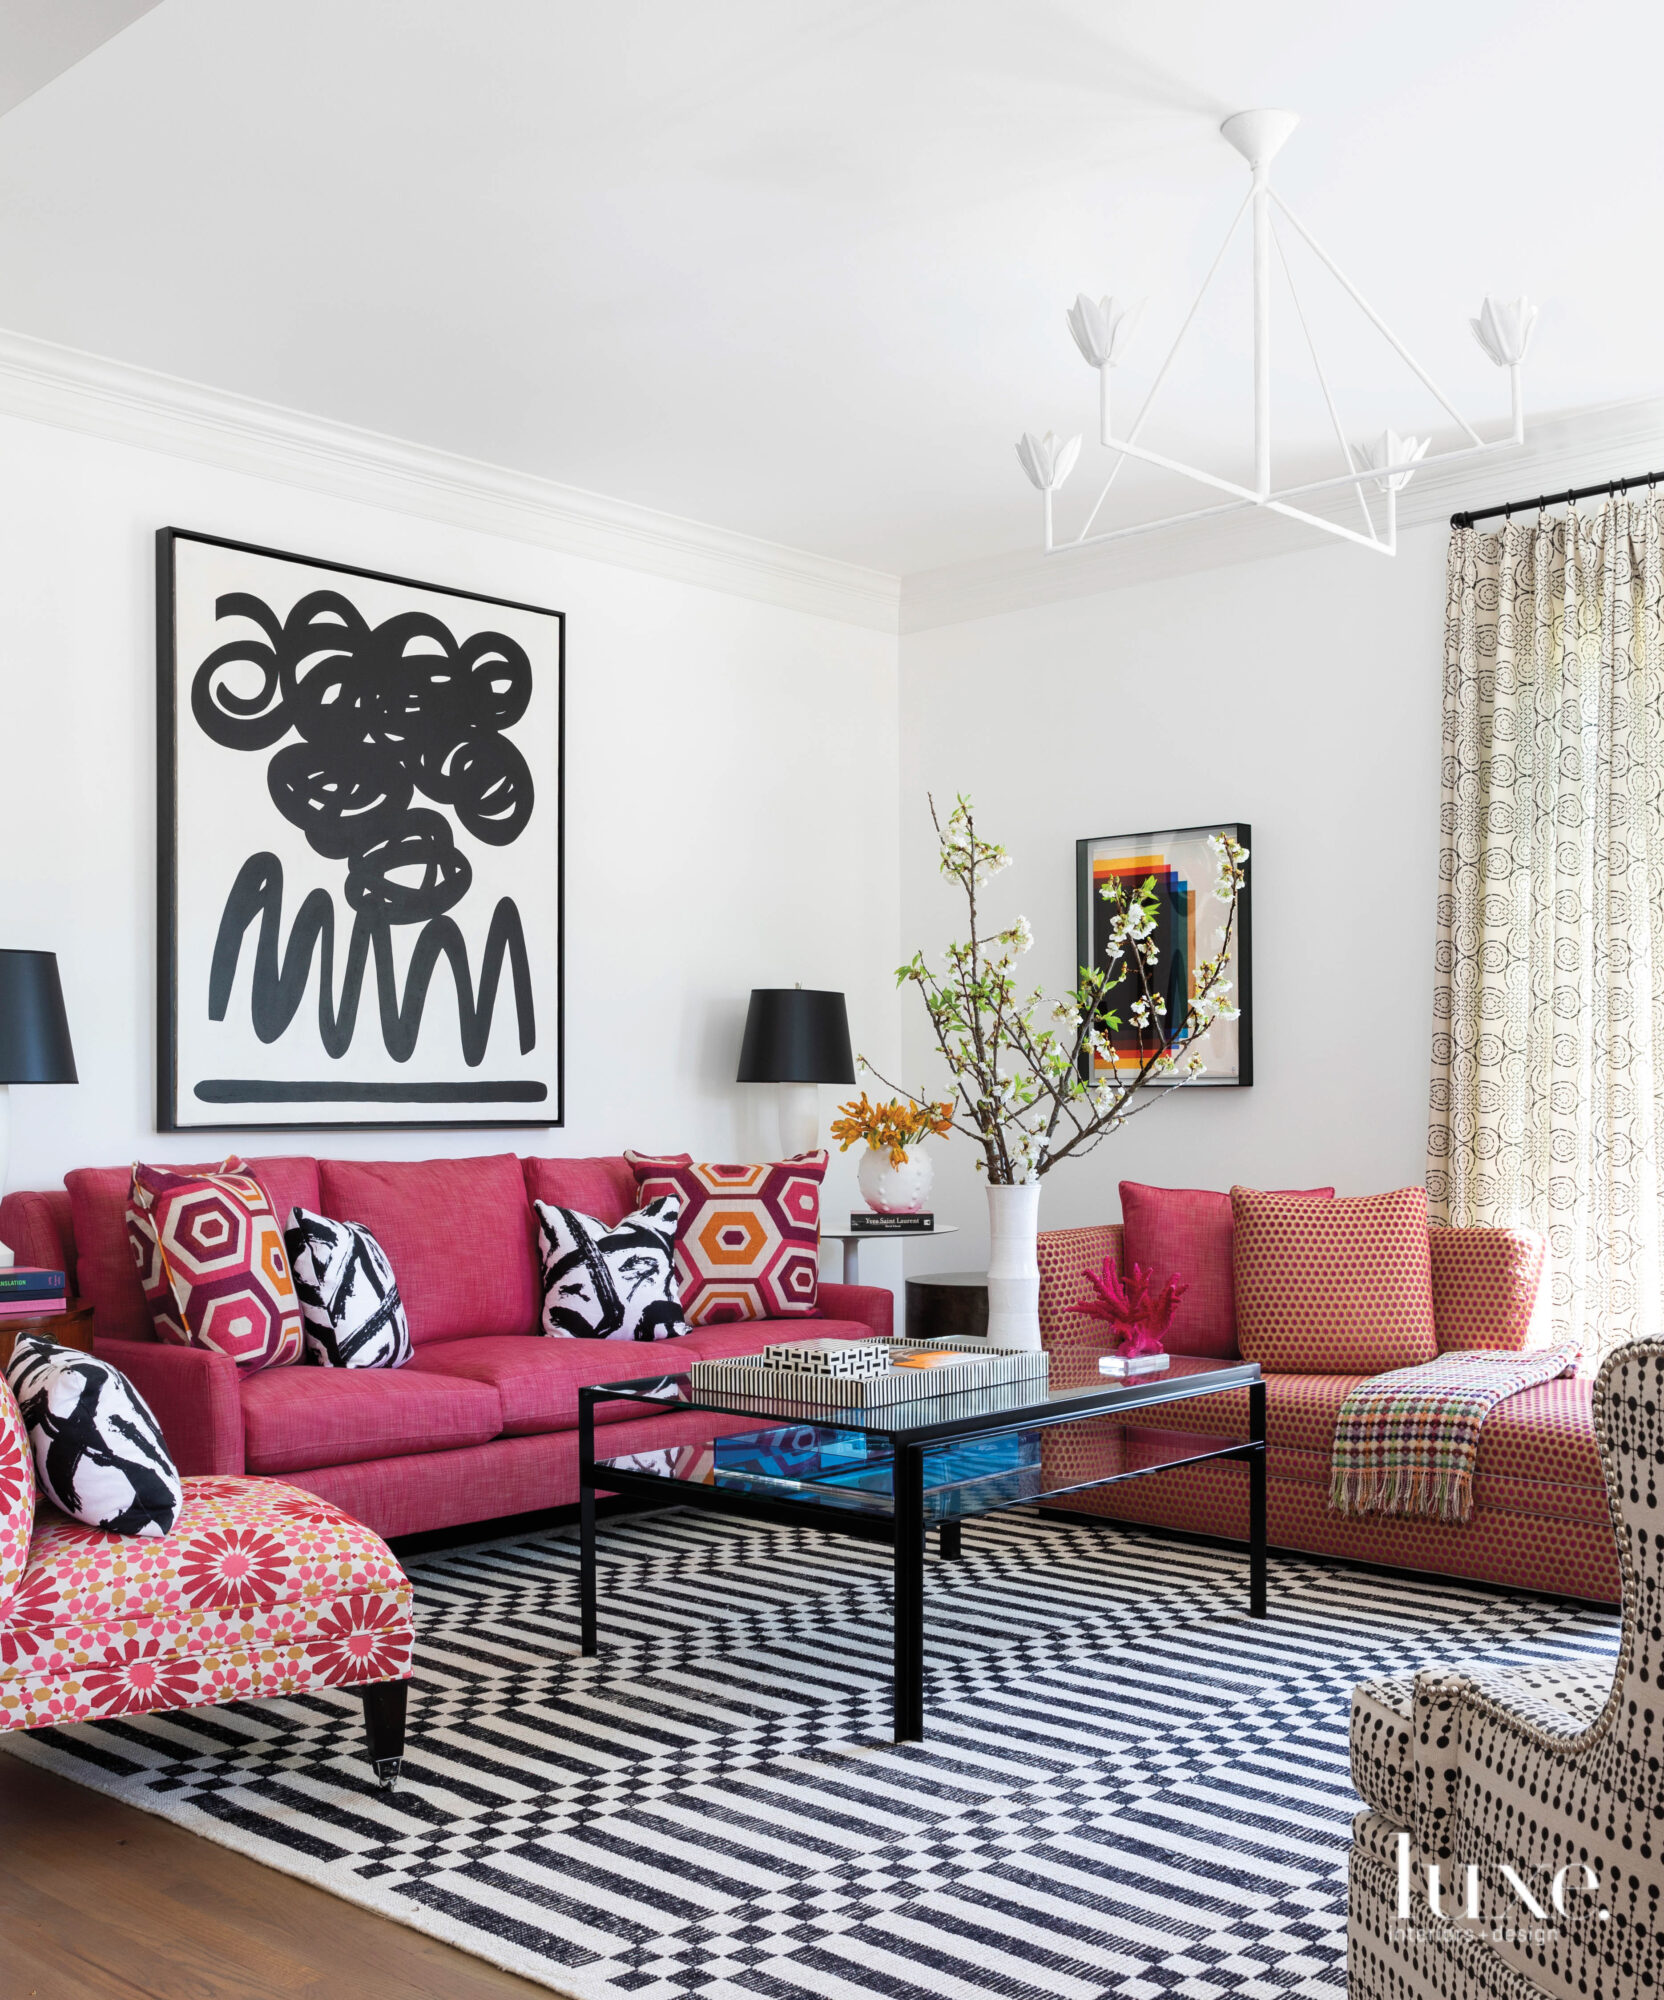 Sitting room with pink furnishings...